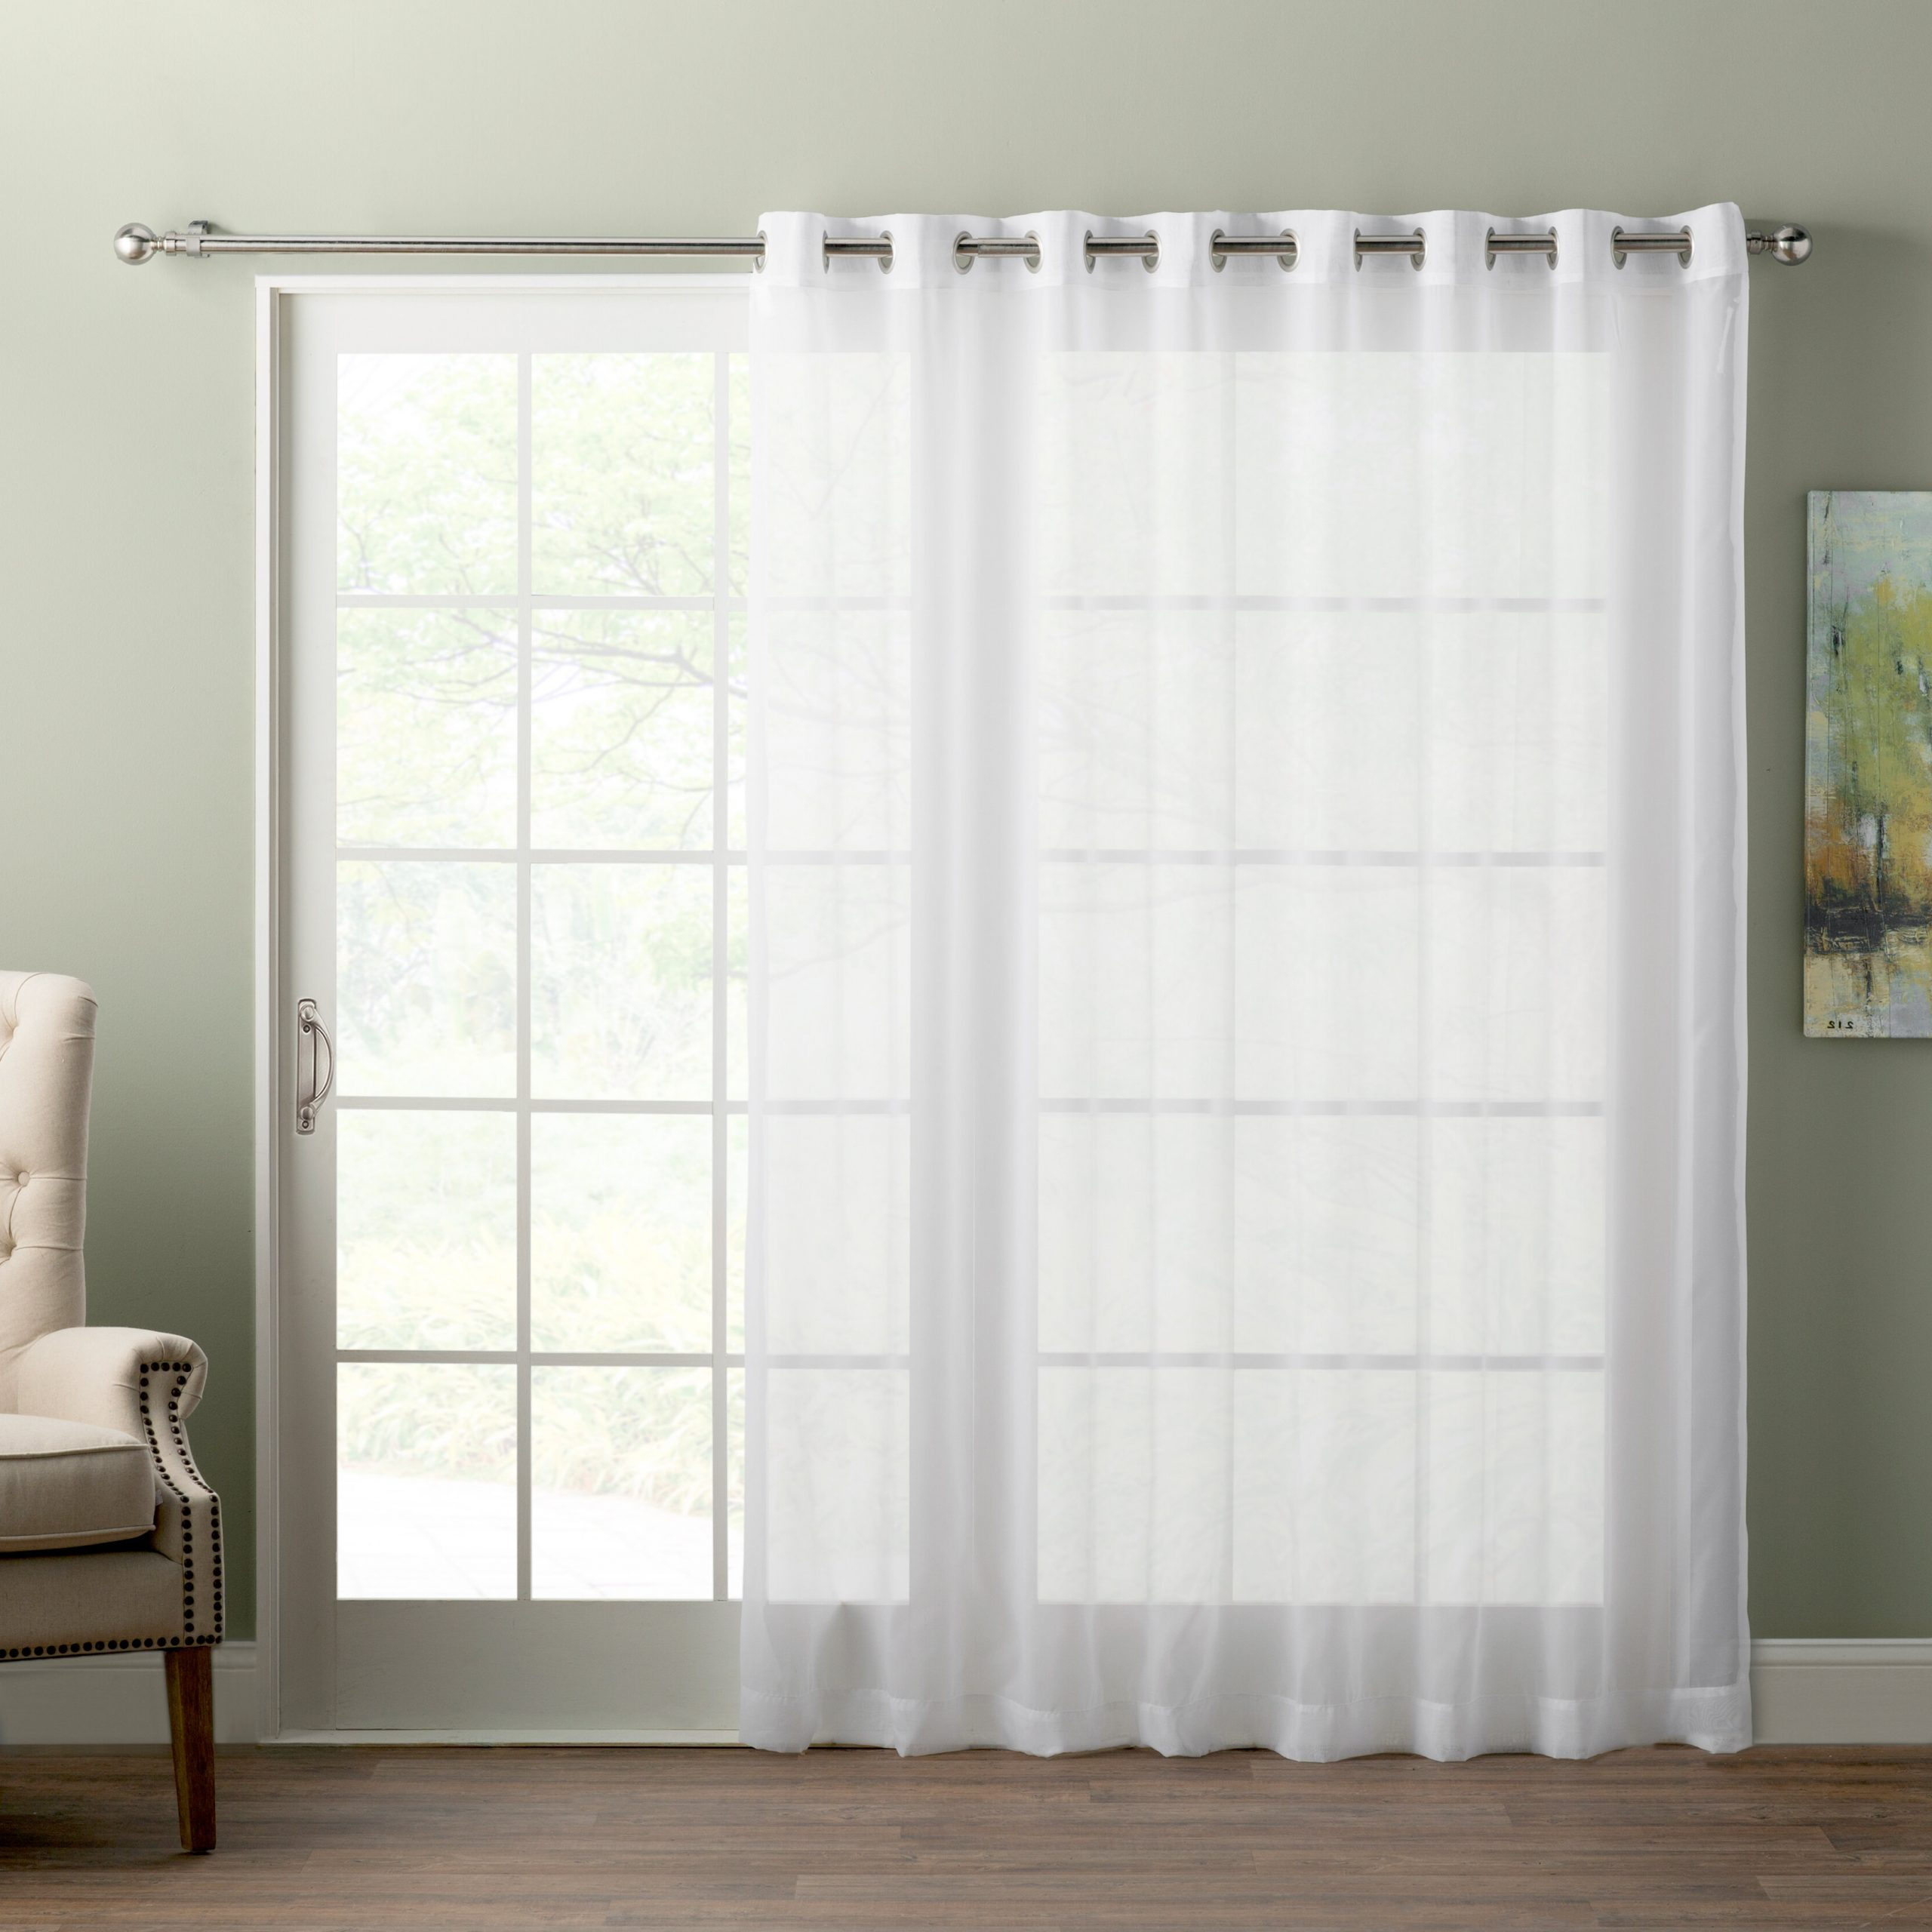 Wayfair Basics Sliding Door Patio Solid Sheer Grommet Single Intended For Widely Used Patio Grommet Top Single Curtain Panels (View 8 of 20)